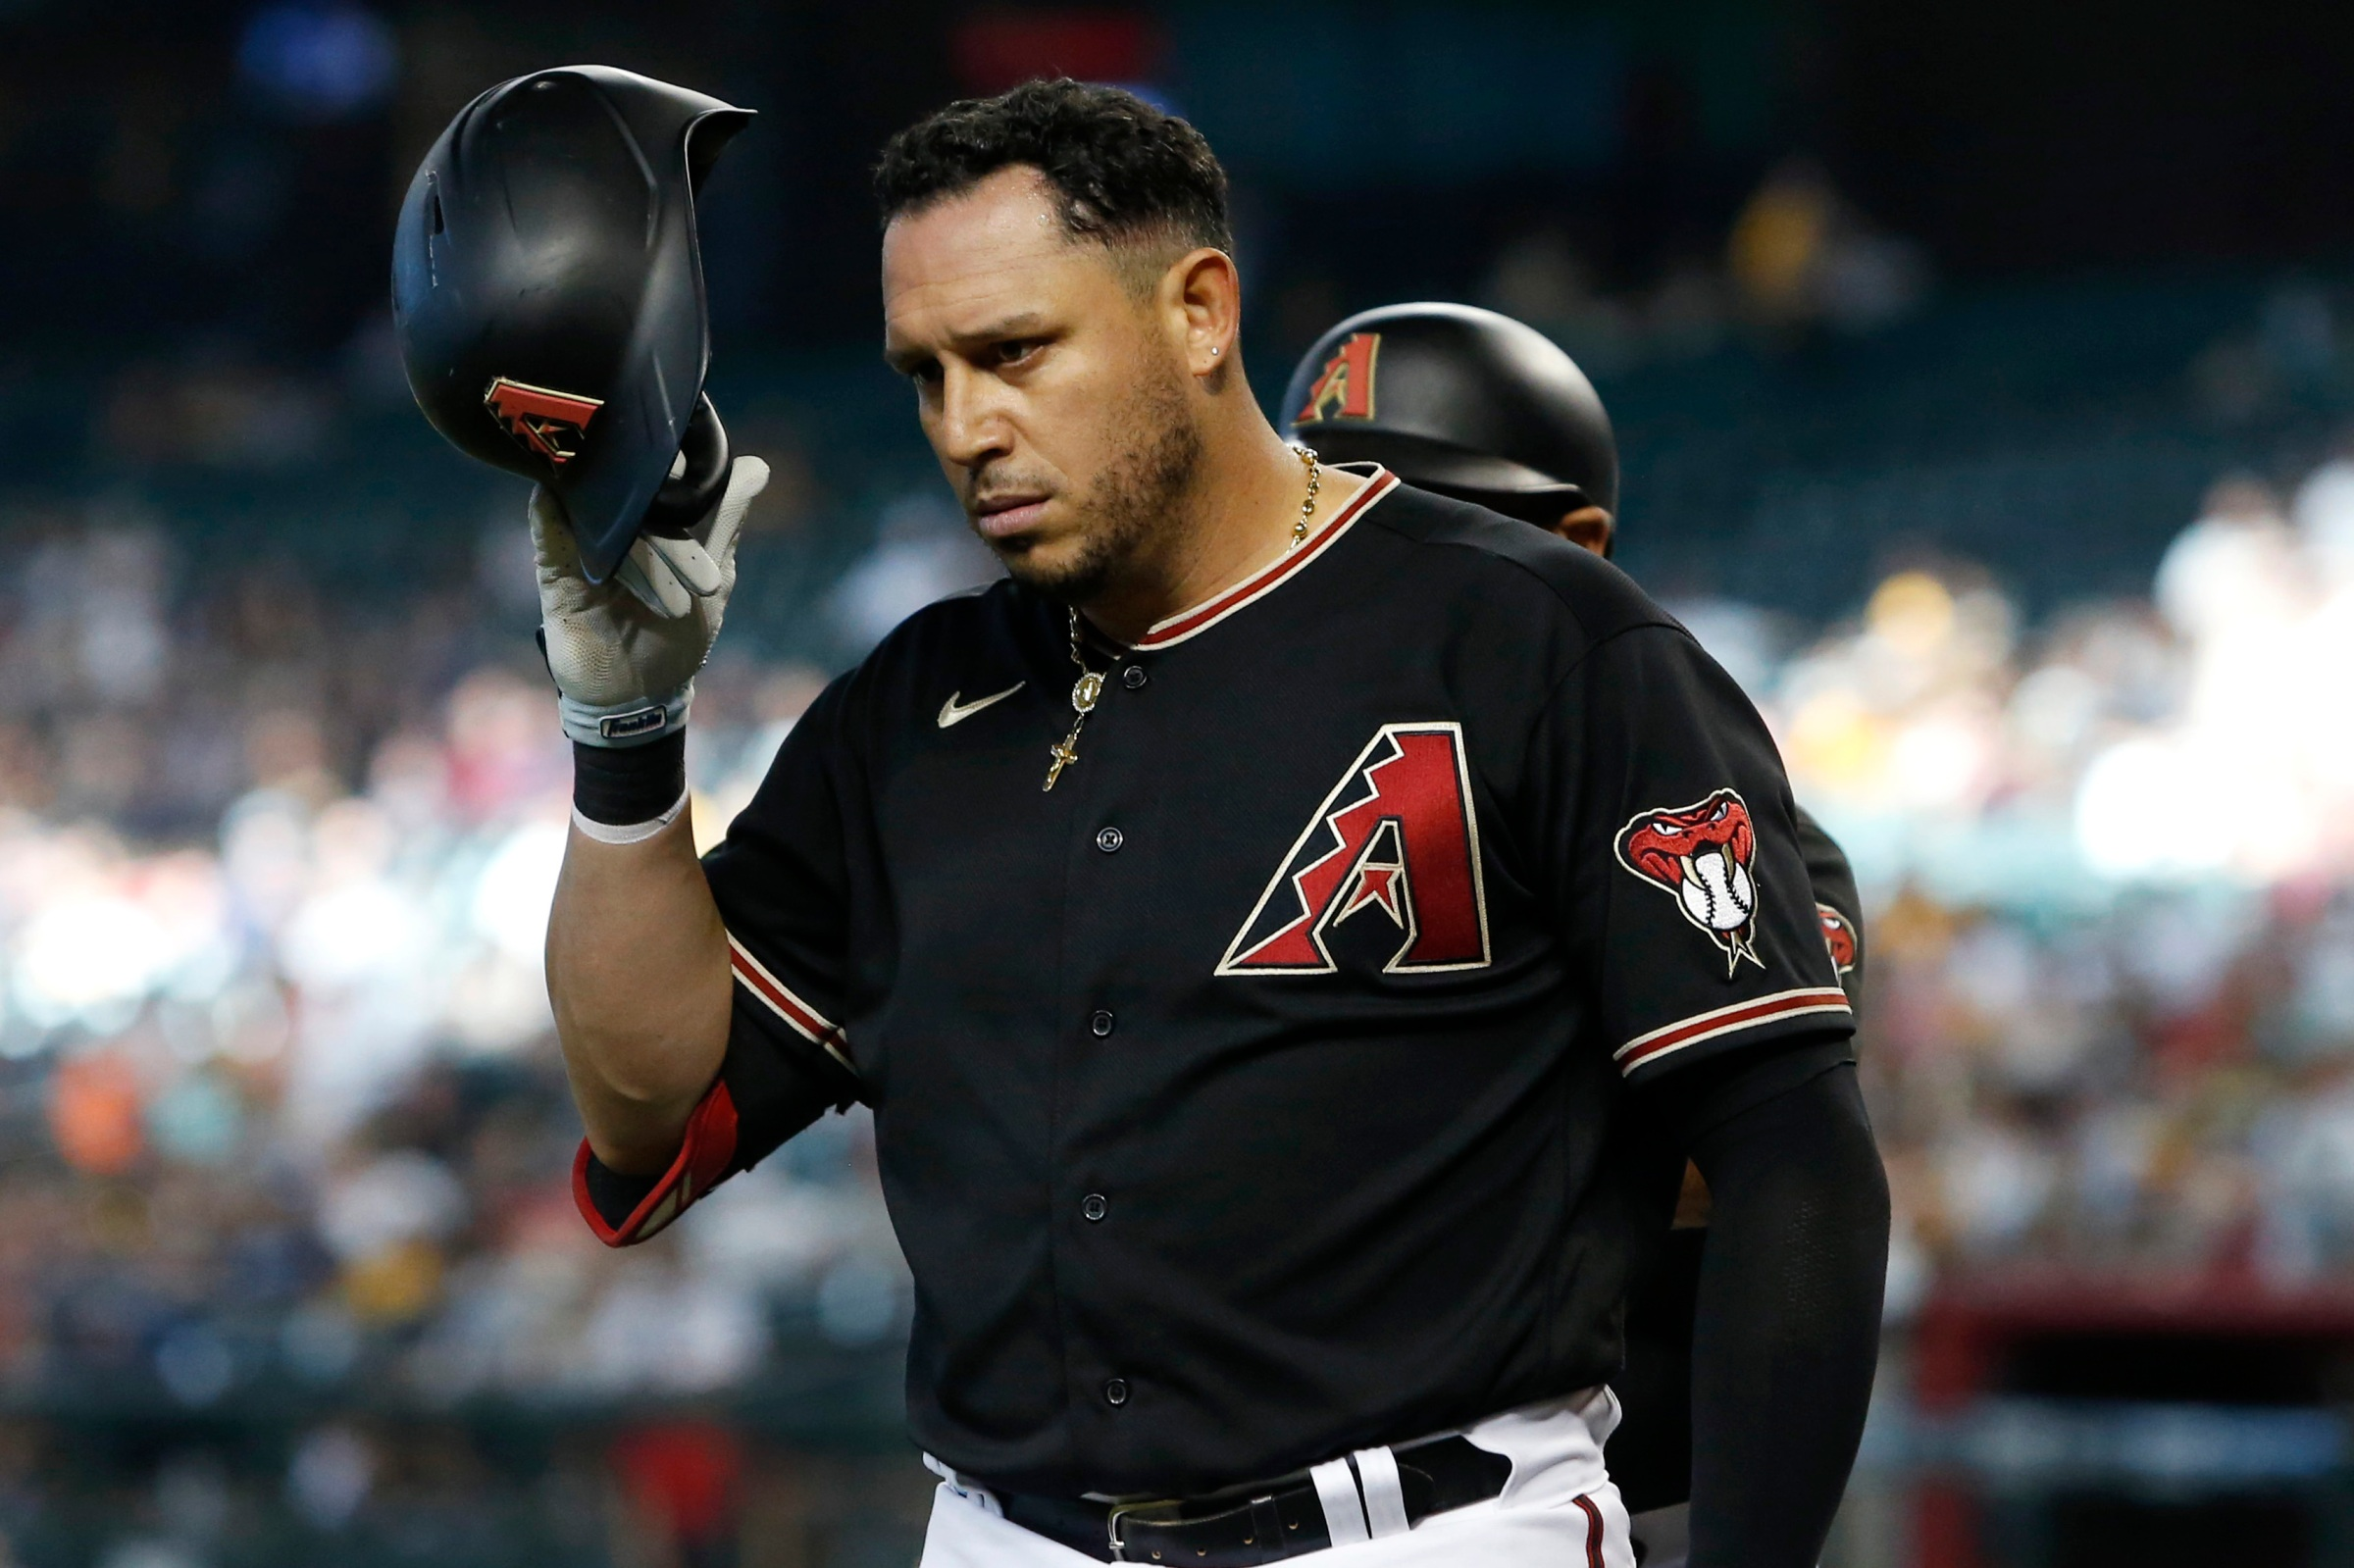 Asdrubal Cabrera, perennial trade deadline mover, seen here with the Diamondbacks. (He's with the Reds now.)